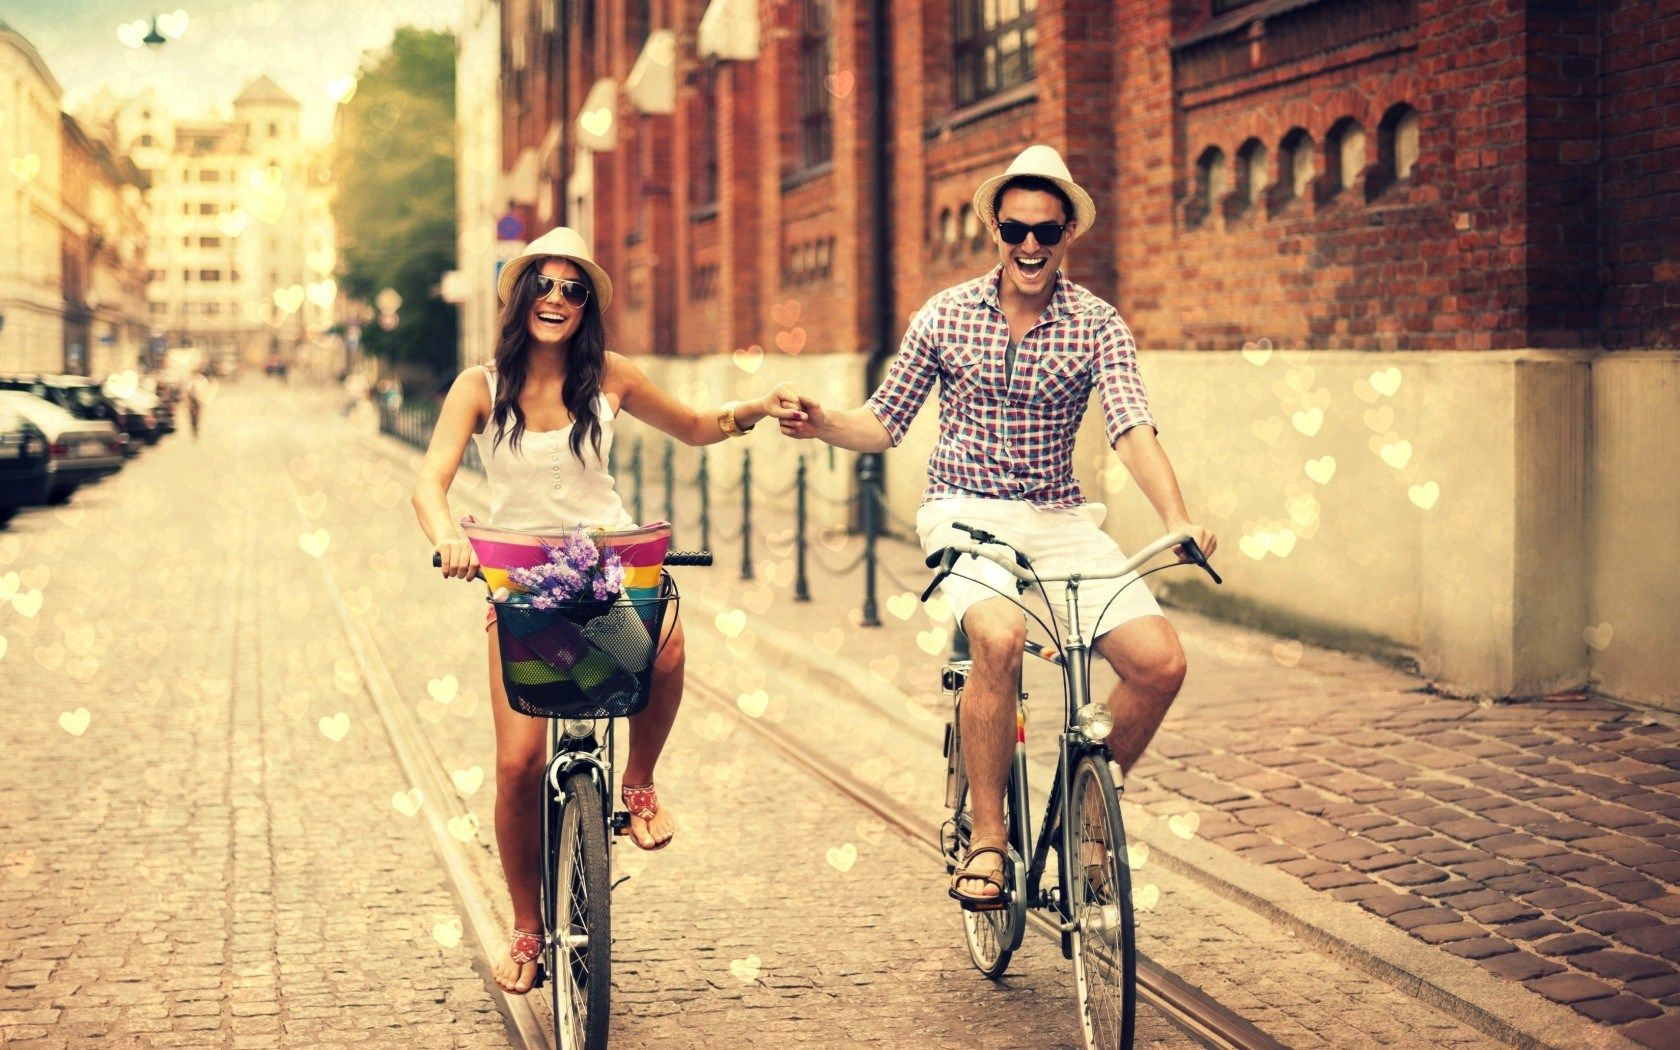 Best Wallpapers of Romantic Boy and Girl in Love Kisshug